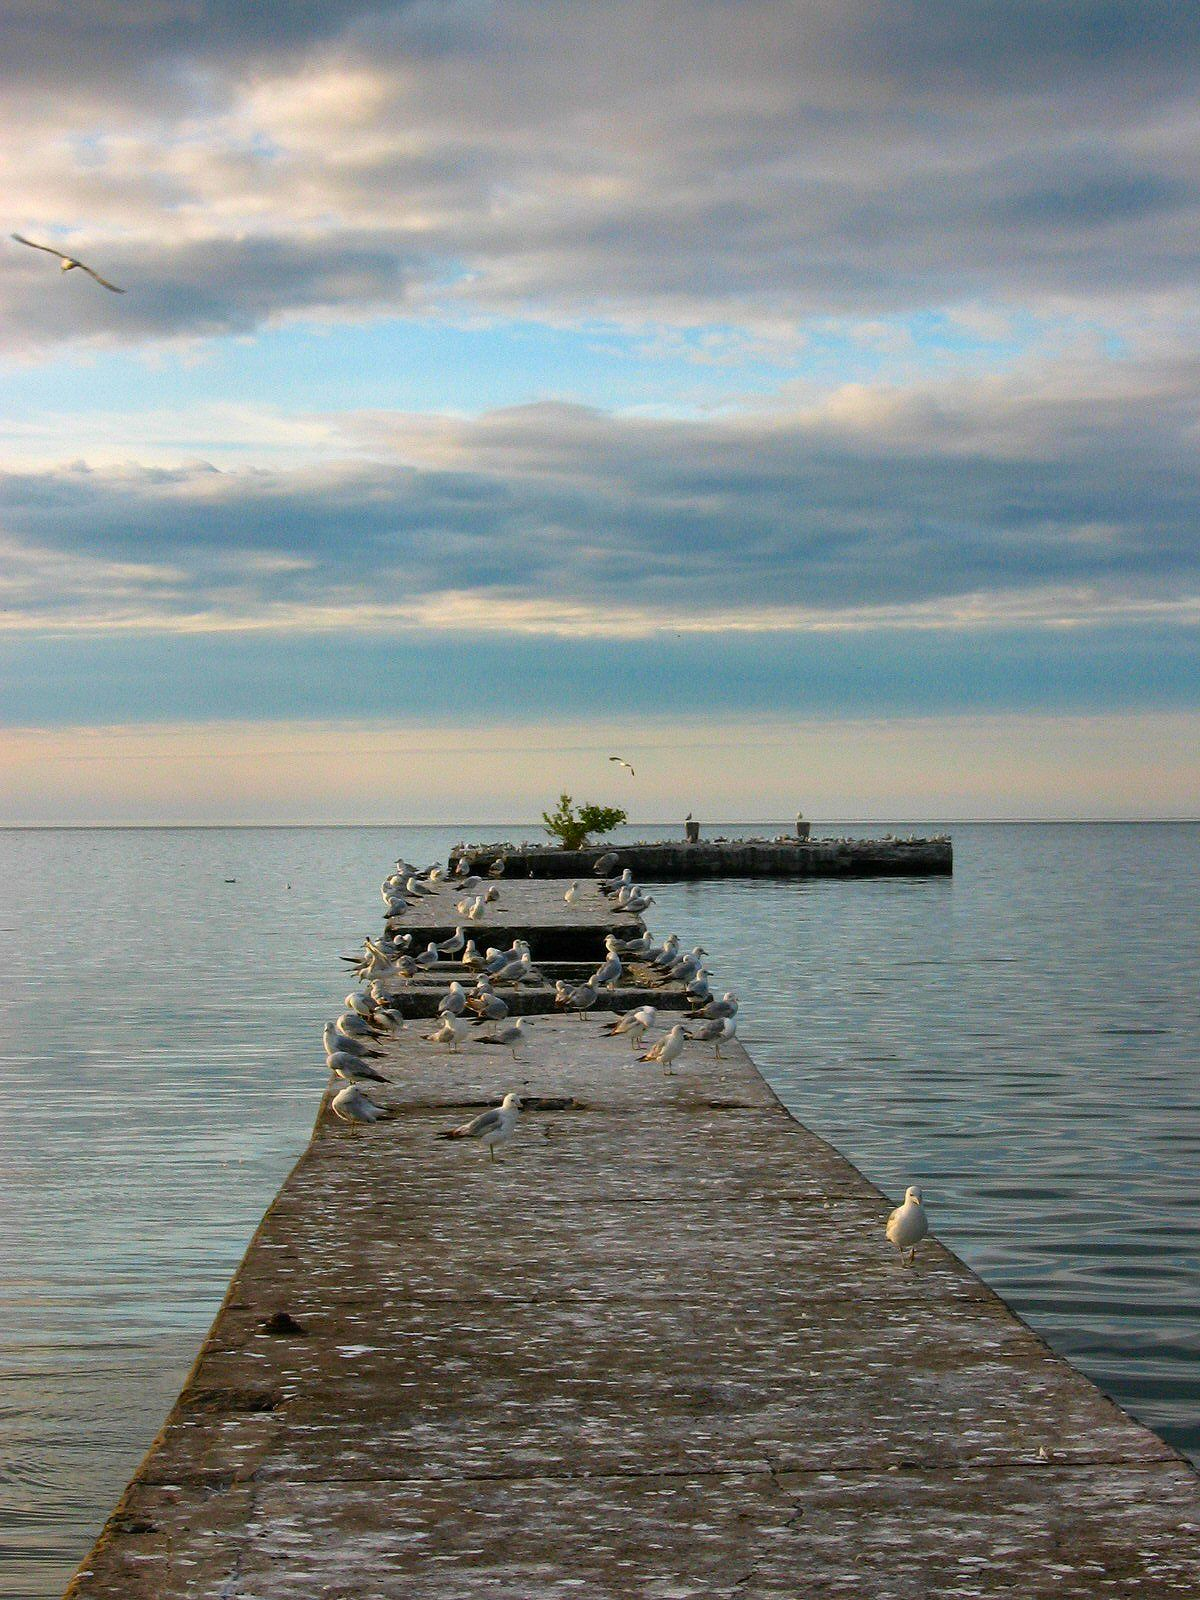 Beach Pier Home Decor For Living Room: Old Pier At Olcott Beach, Olcott, NY Photo By Kristine